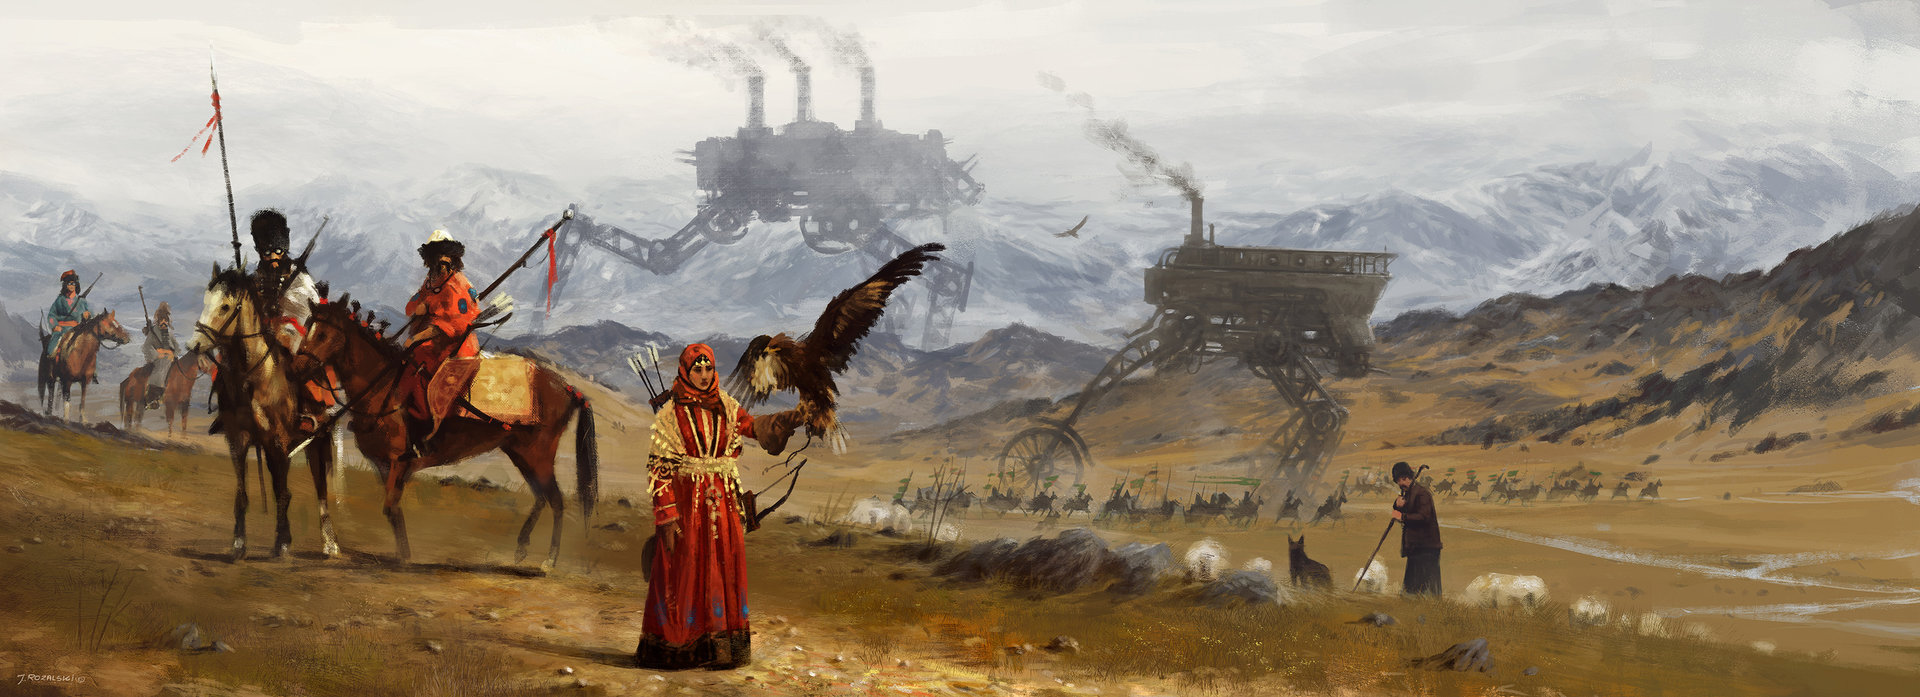 Jakub rozalski player mat crimea small